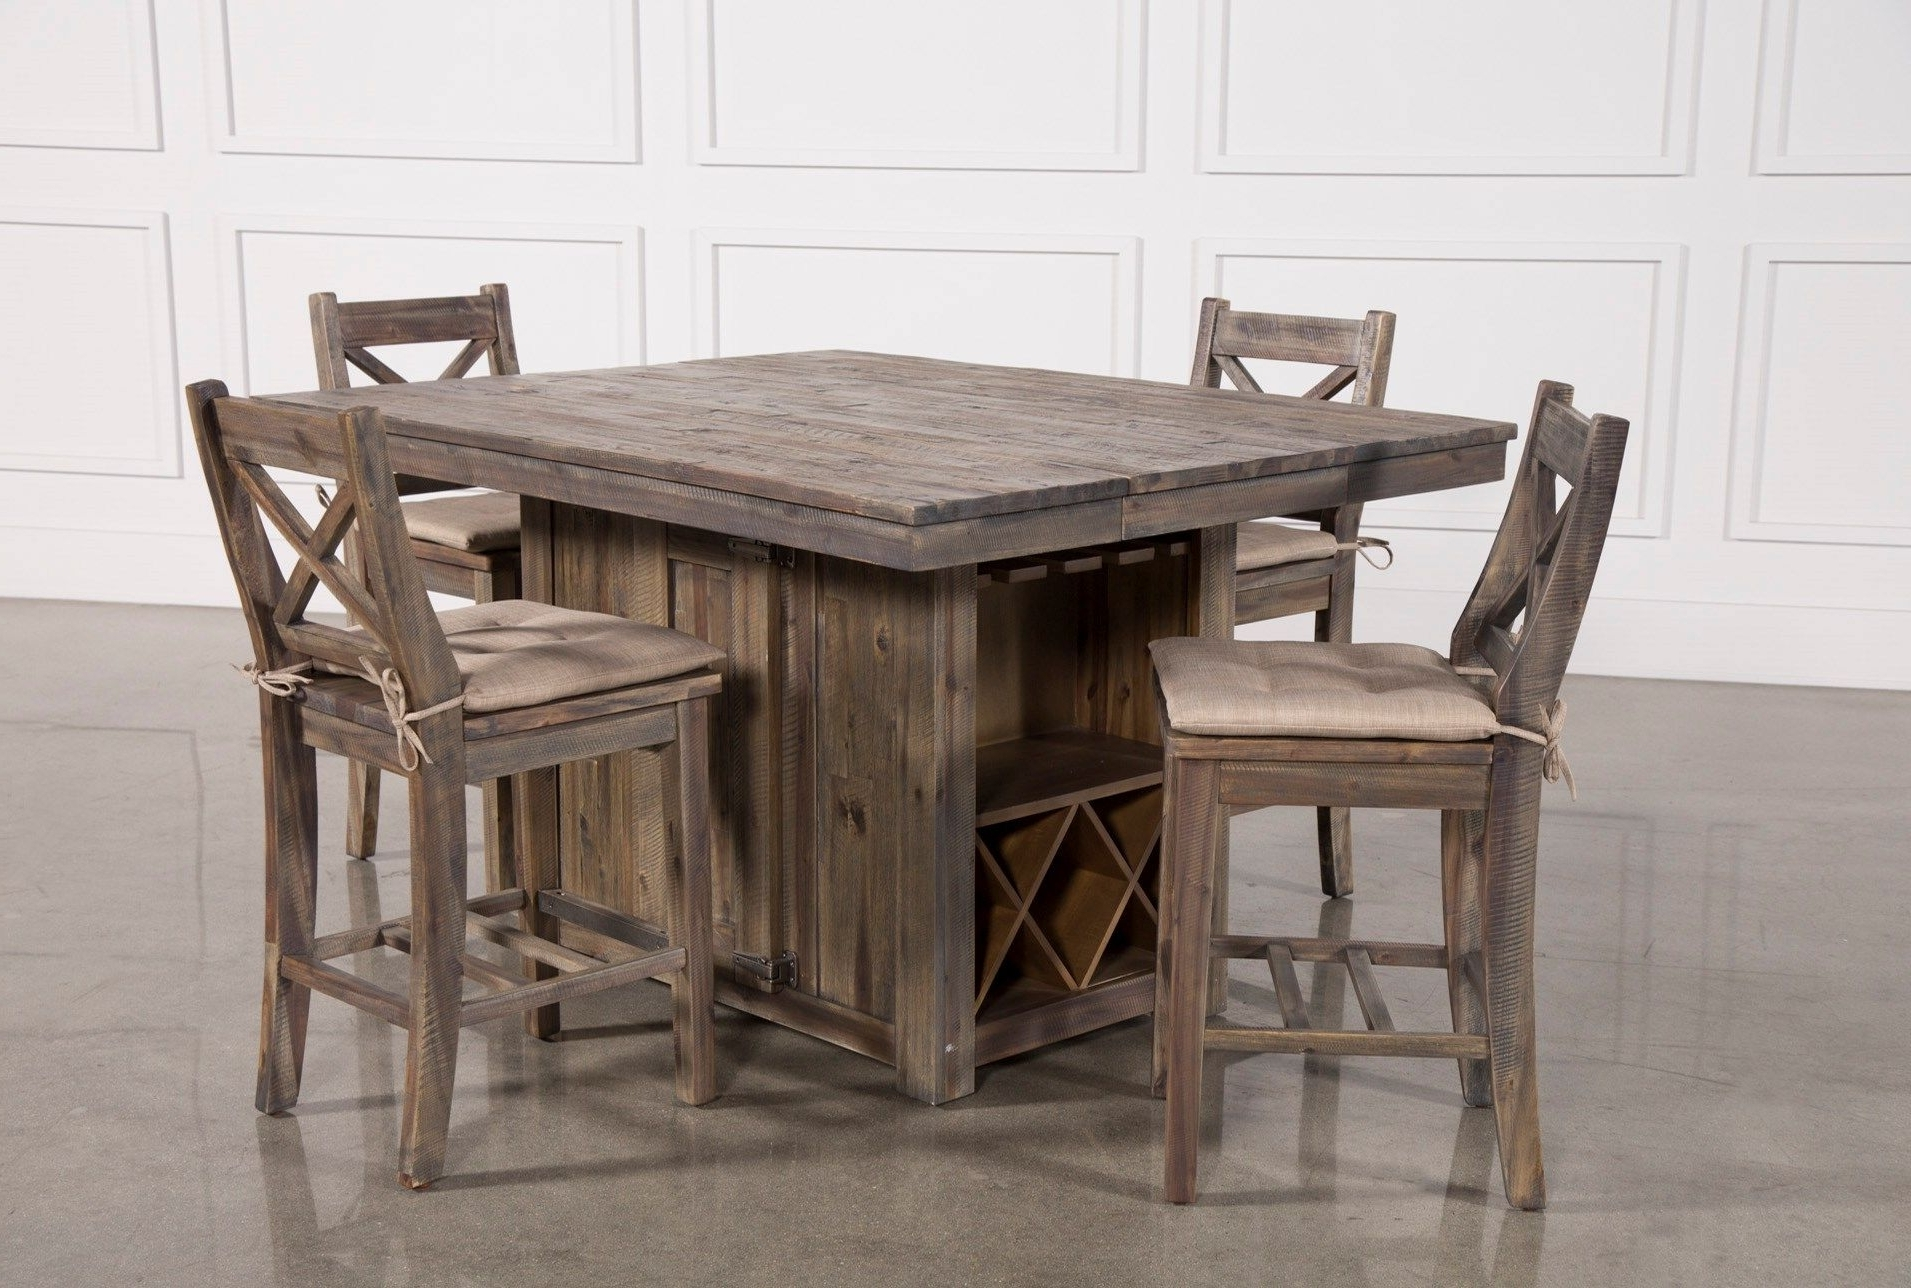 Mallard 7 Piece Extension Dining Sets With Regard To Current Mallard 5 Piece Extension Counter Set – Top (View 5 of 25)